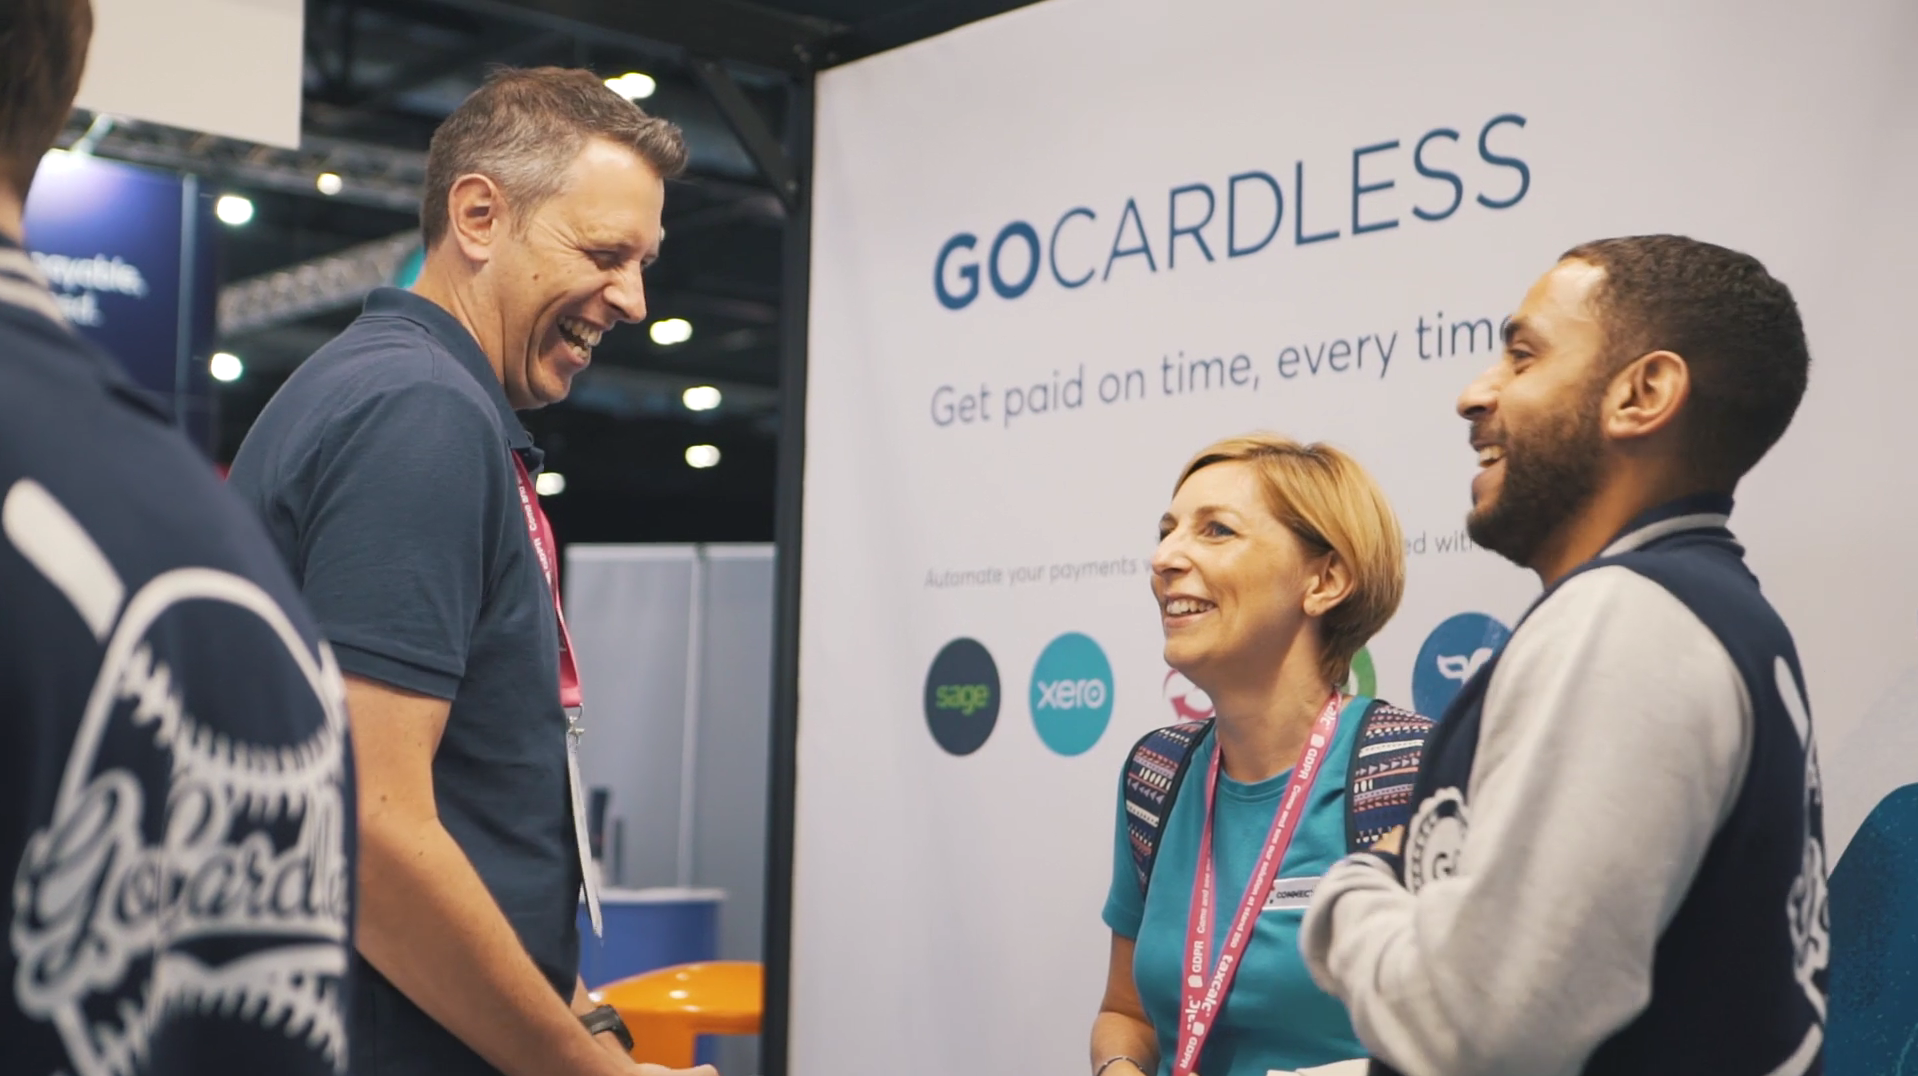 GoCardless @ Accountex 2018